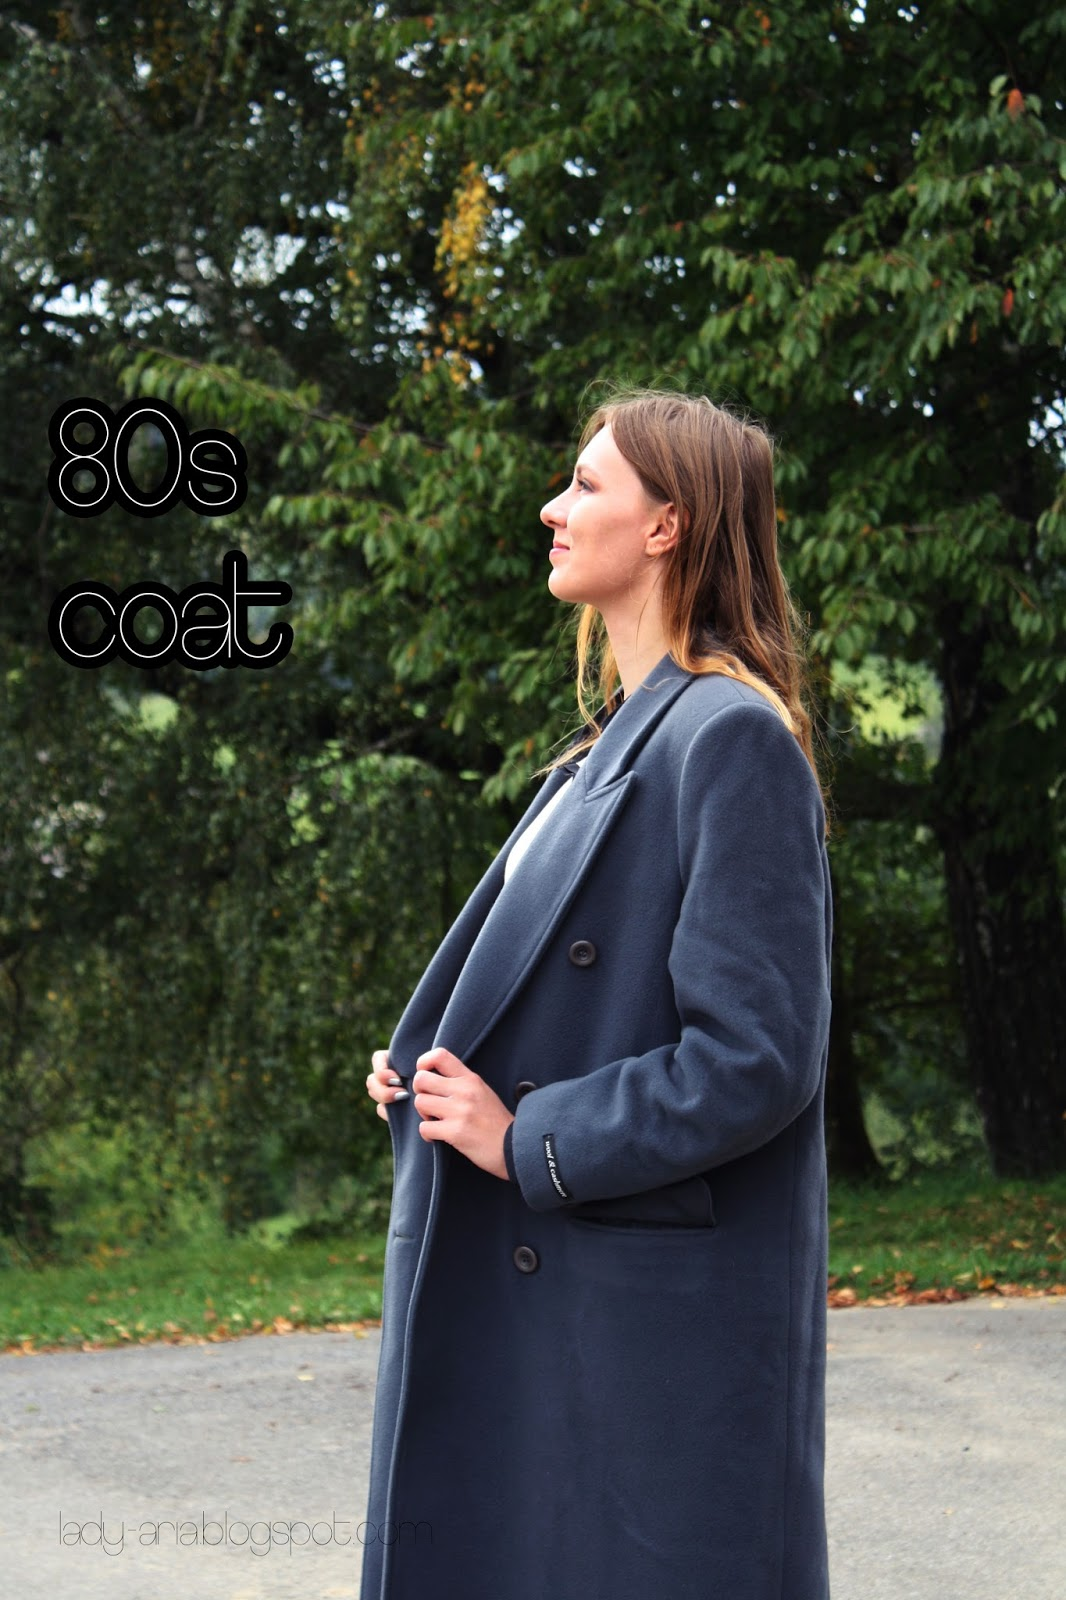 80s coat | All the things I want I really shouldn't get...